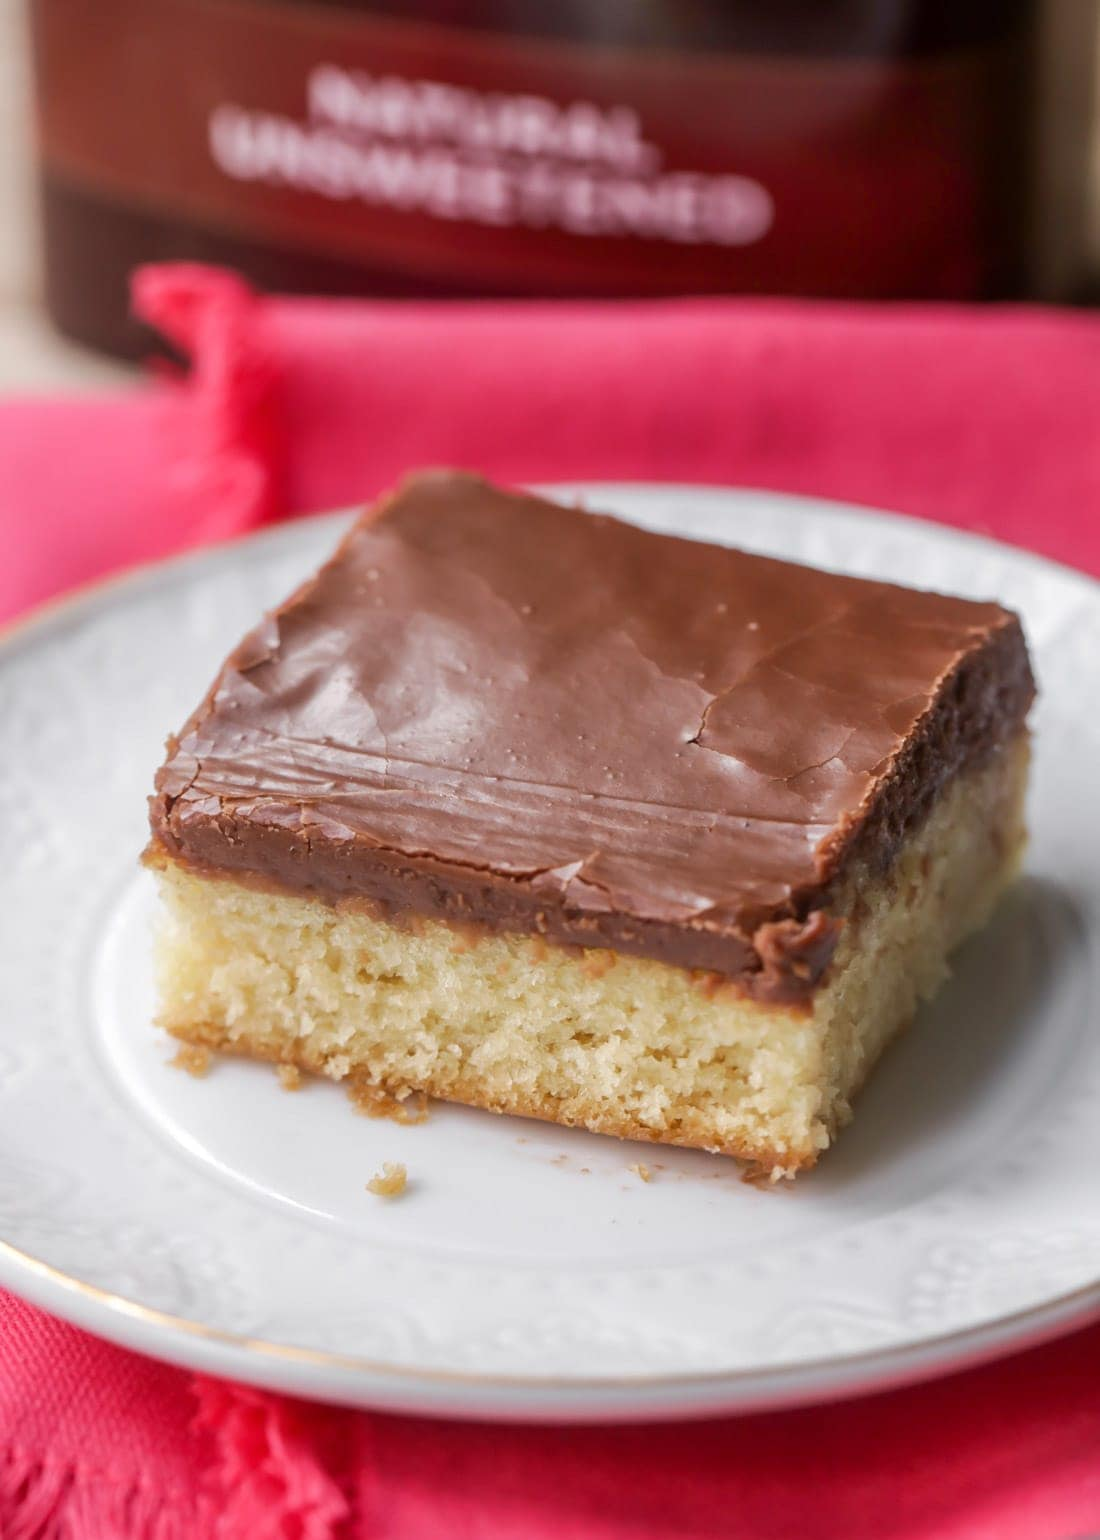 A slice of white Texas sheet cake with chocolate fudge frosting on a plate